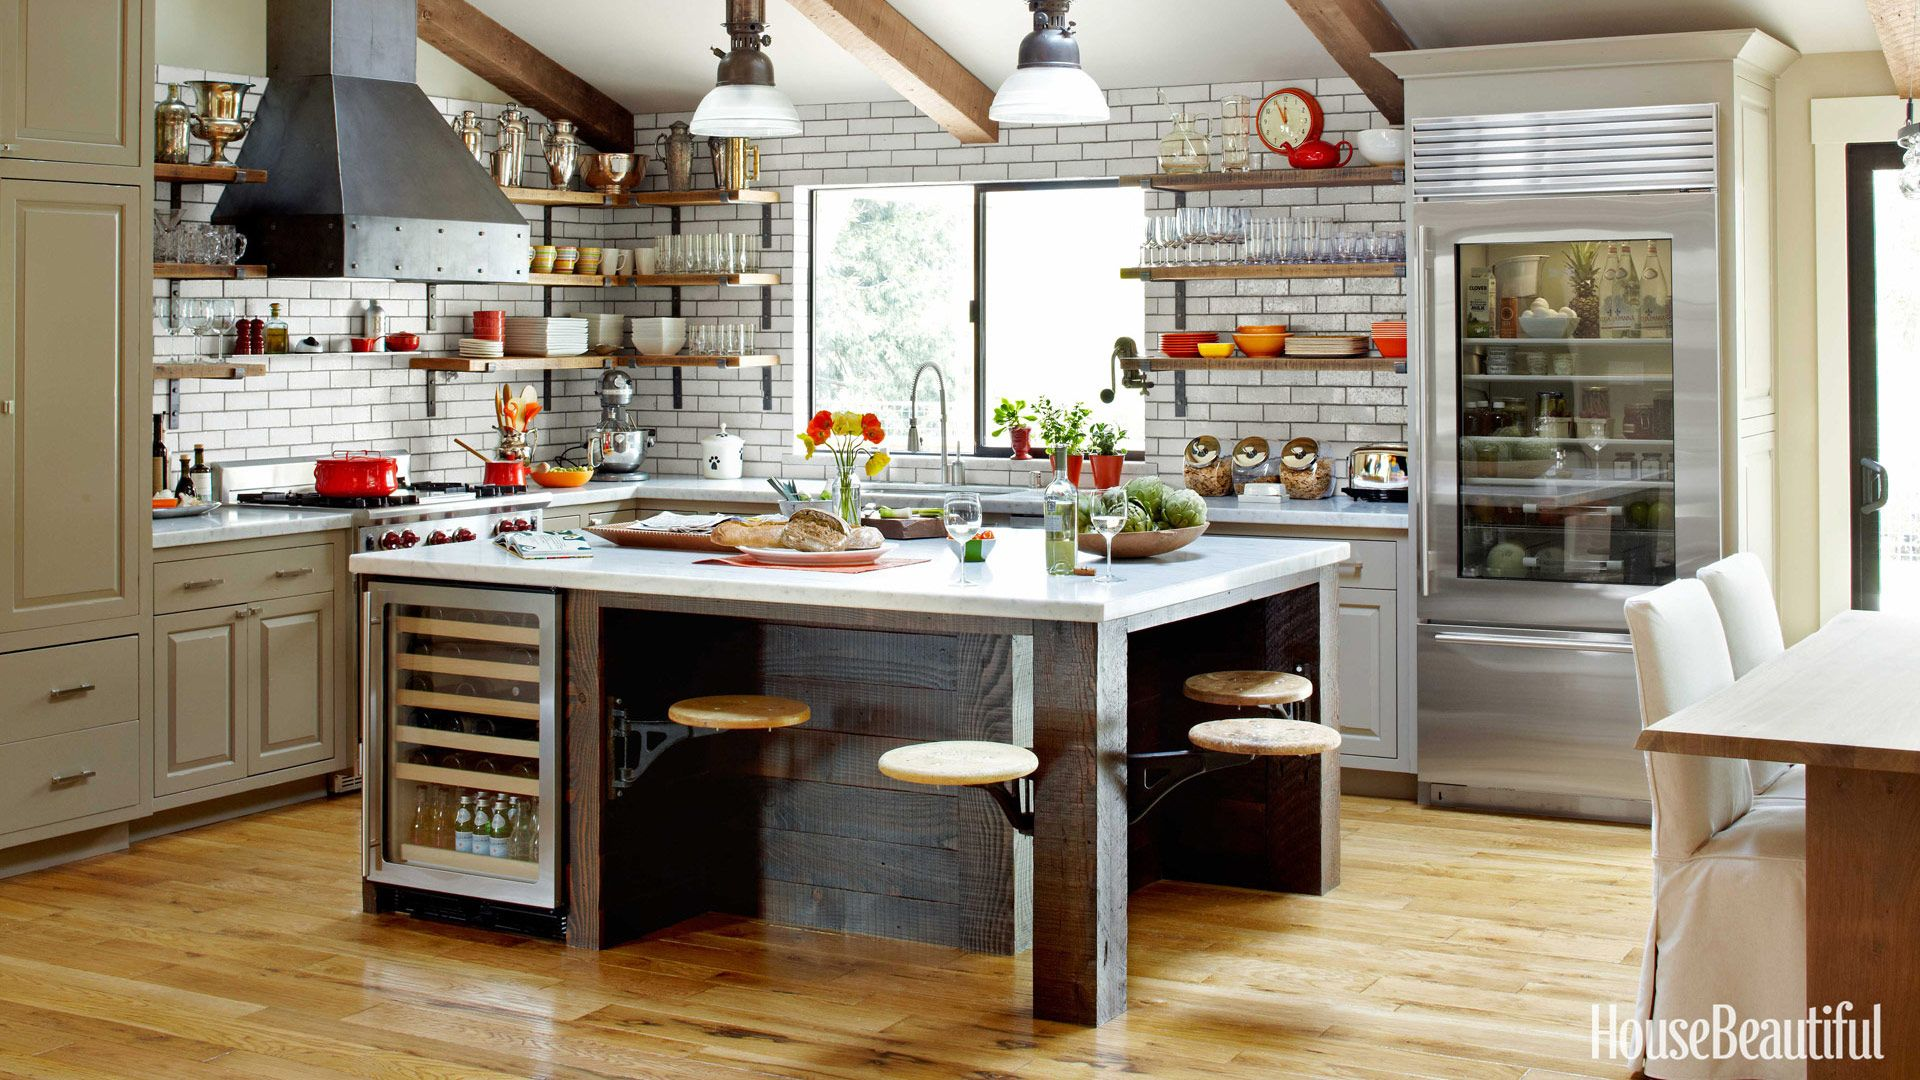 Uncategorized California Kitchen Design dan doyle interview industrial kitchen design